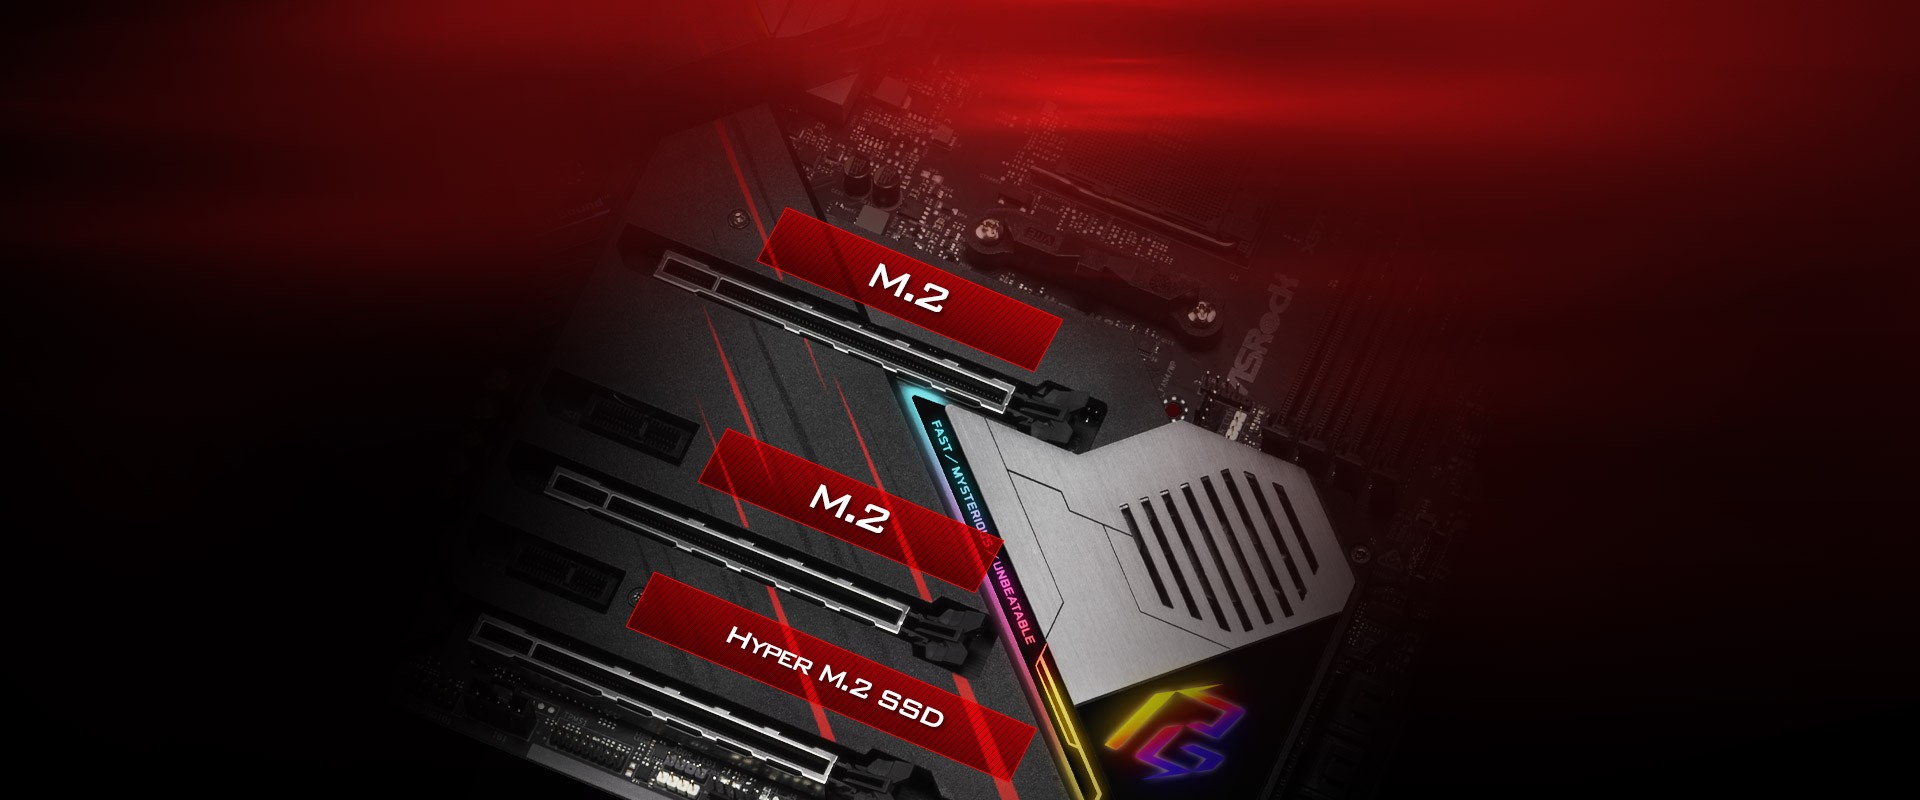 Highlight graphic showing the three M.2 slots on the ASRock X570 Phantom Gaming X Motherboard, with the third bottom one being Hyper M.2